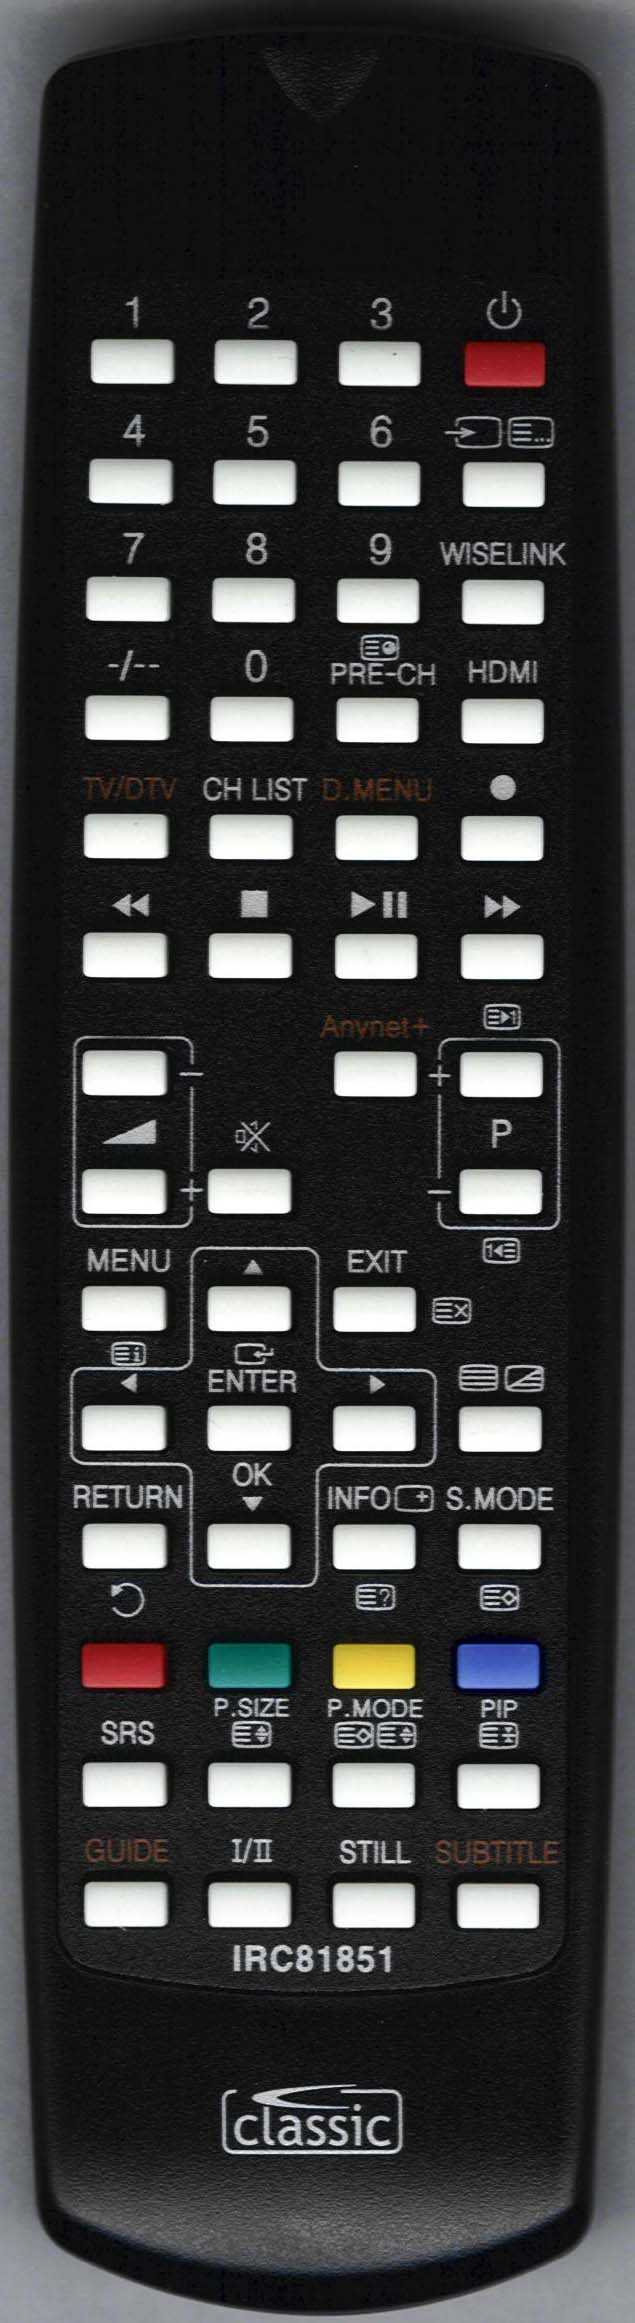 SAMSUNG BN59-00603A Remote Control Alternative